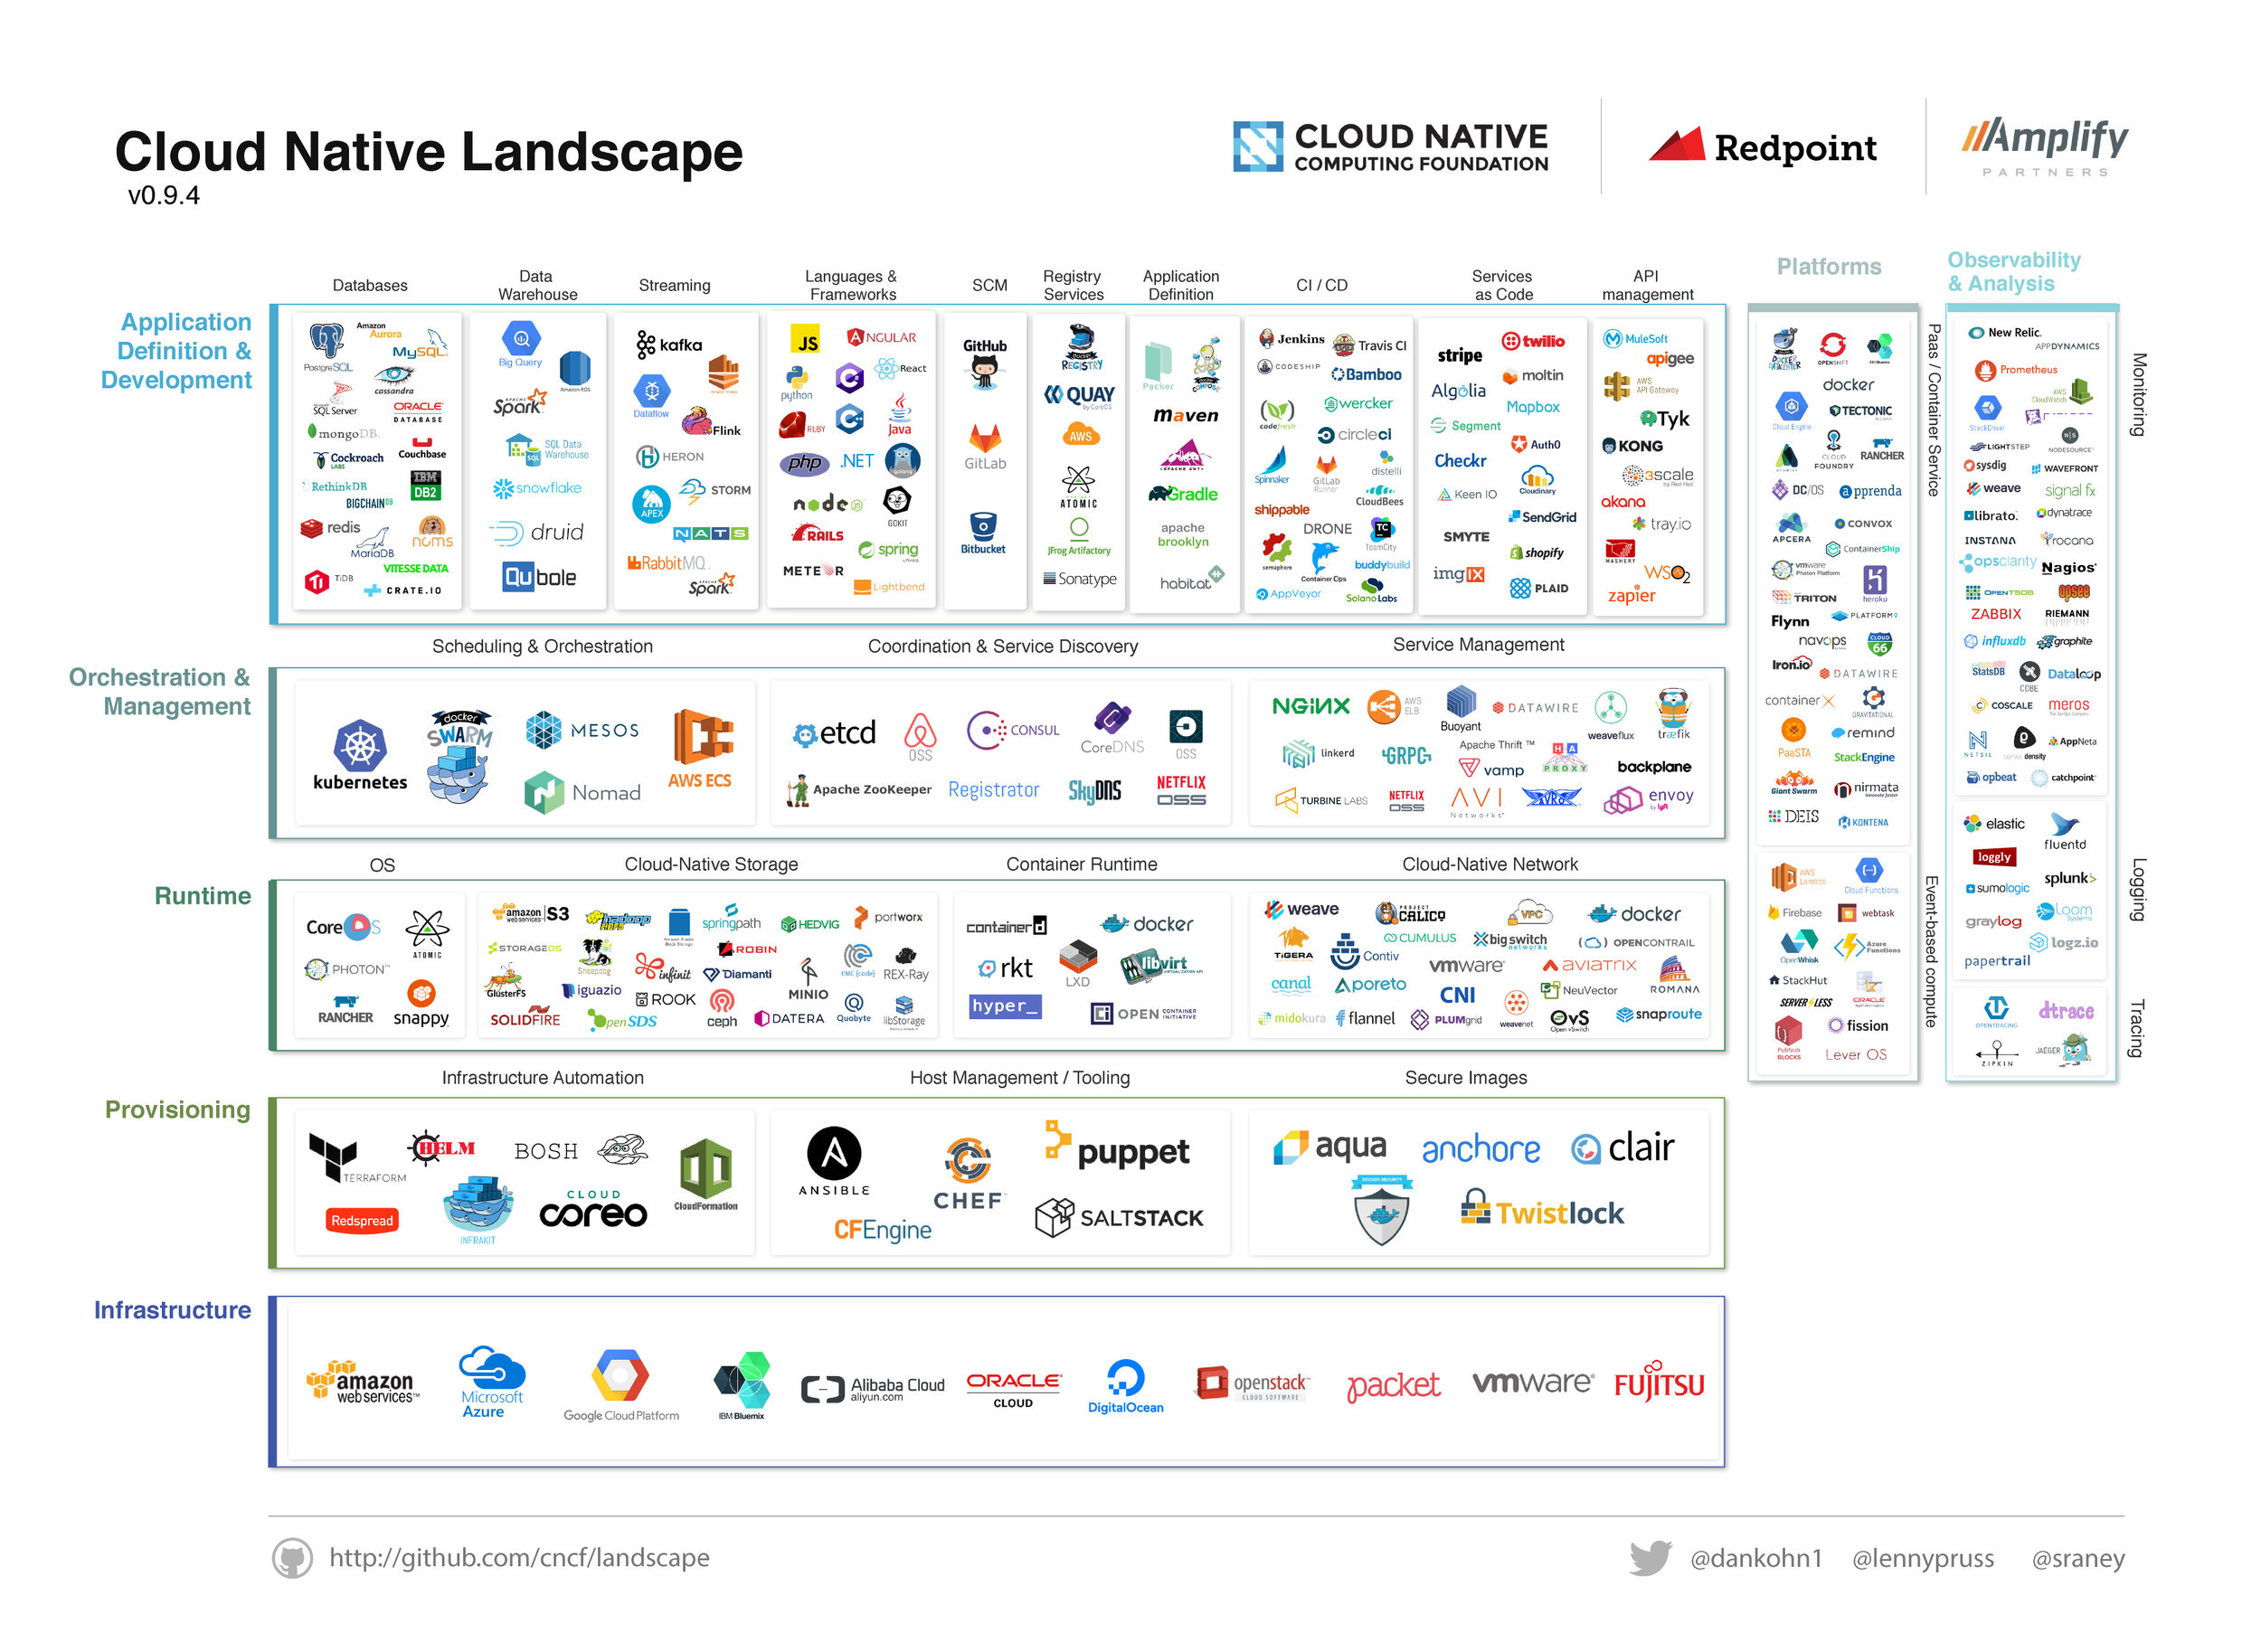 Cloud Native Landscape